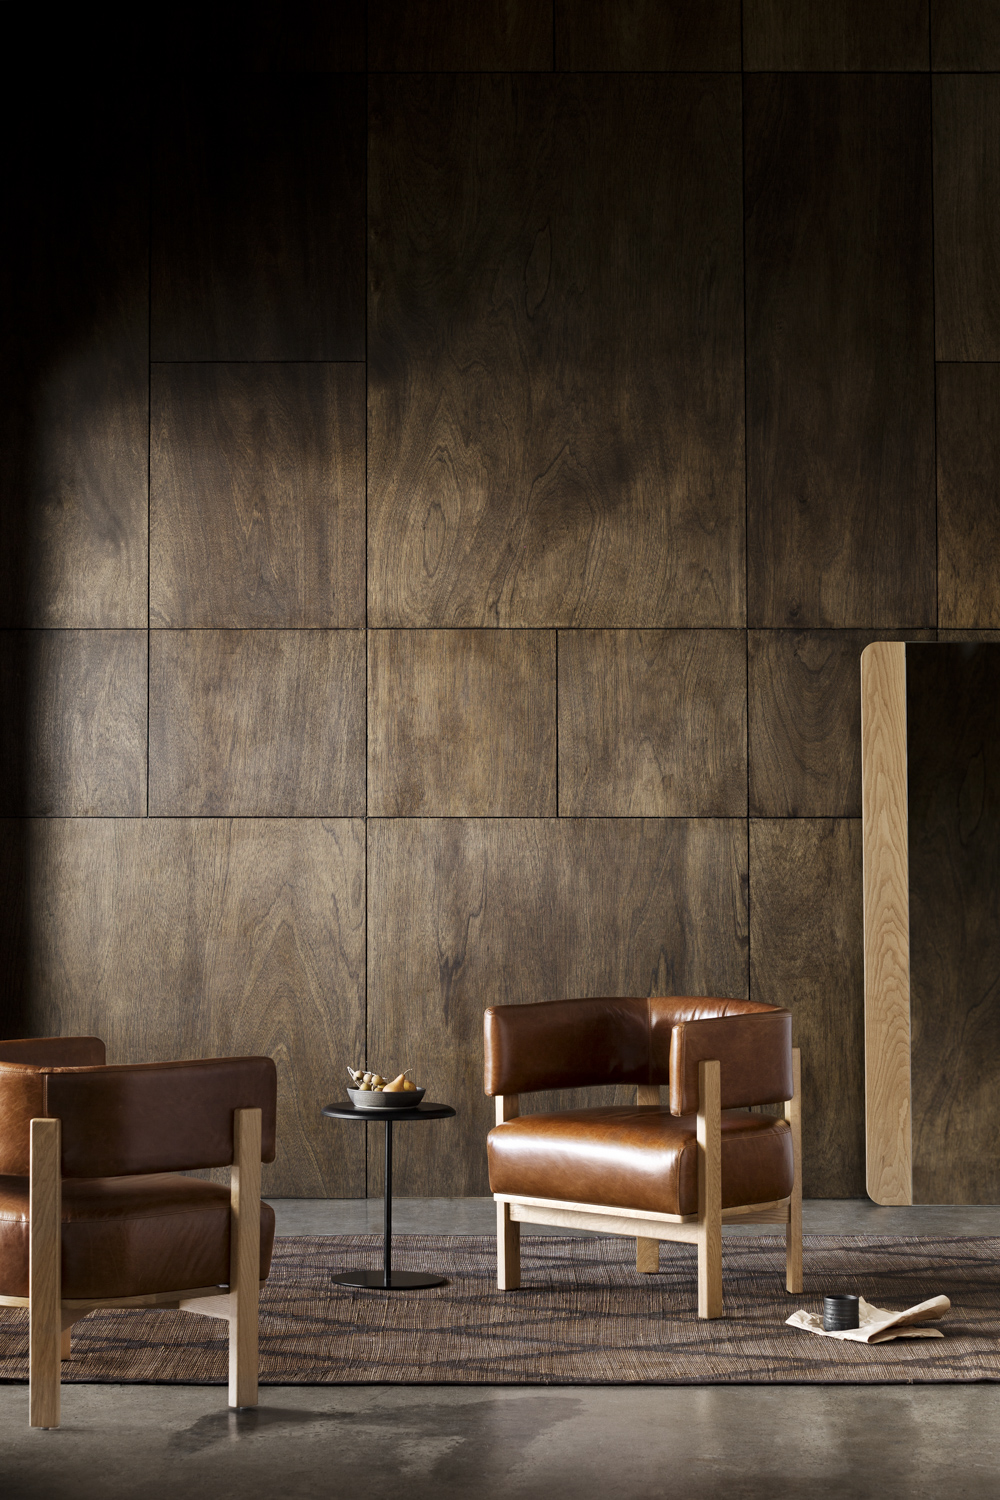 Gallery Of Flo Armchair By Anaca Studio Local Australian Furniture Design Collingwood, Melbourne Image 9